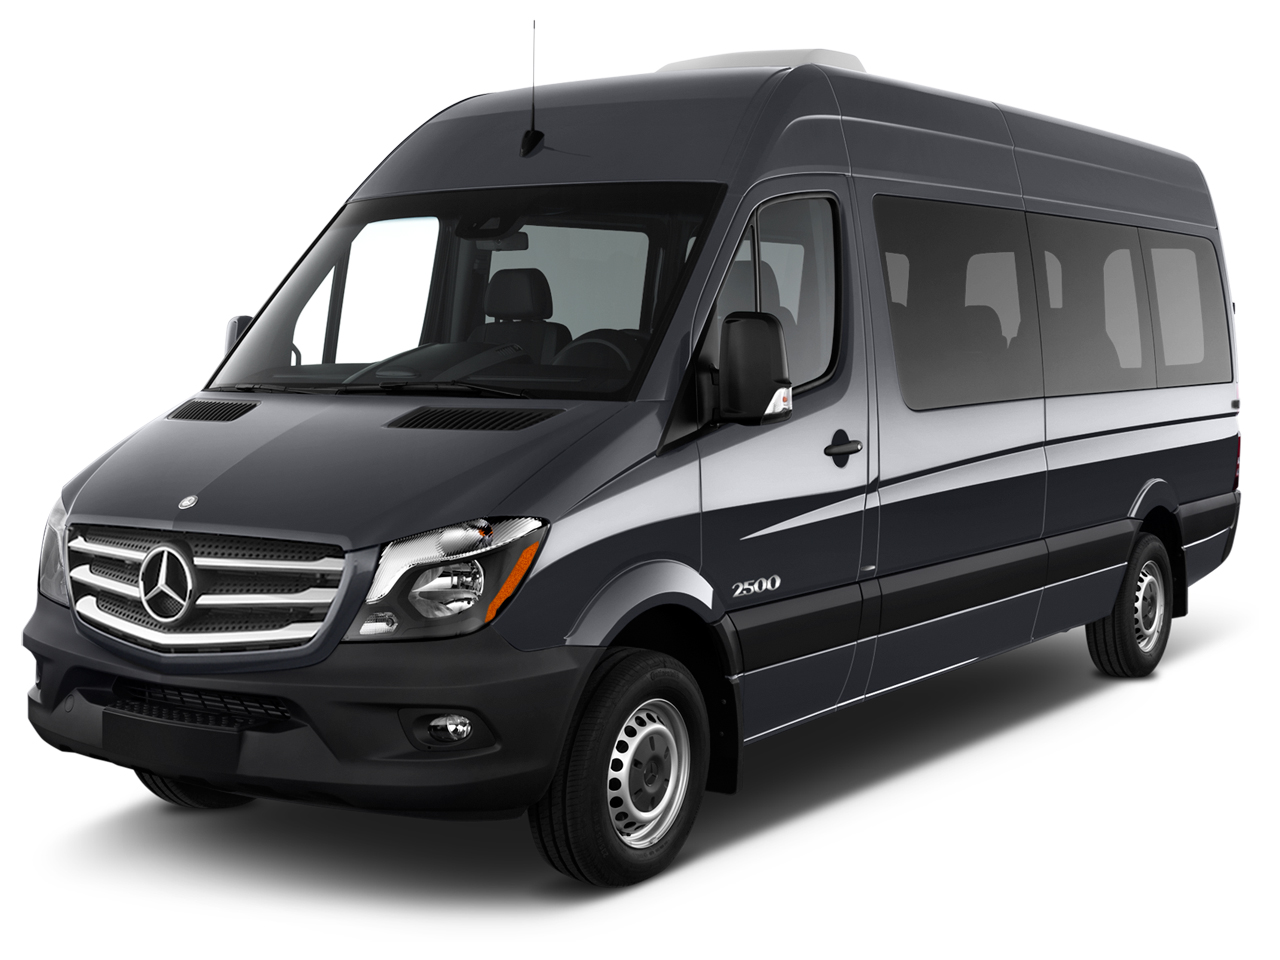 Mercedes Benz sprinter Passenger Van 2017 on lexus cargo net